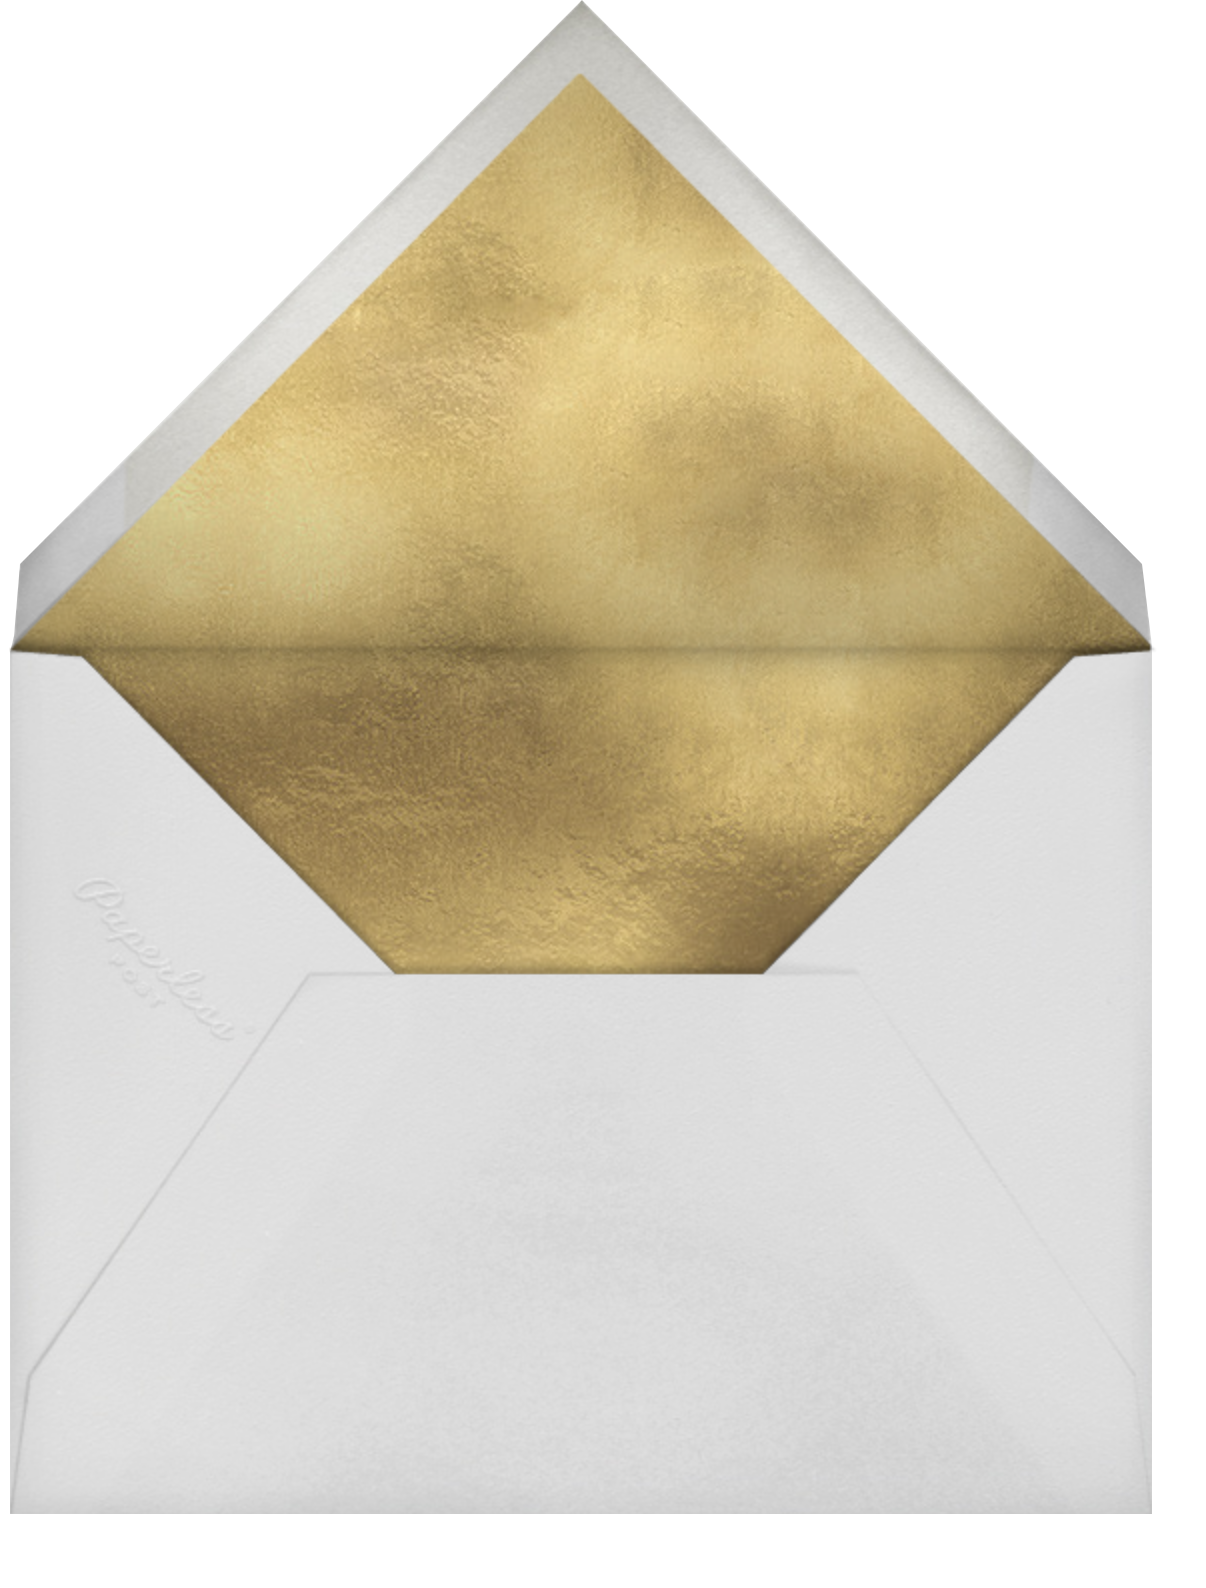 Give Thanks Foliage - Rifle Paper Co. - Thanksgiving - envelope back